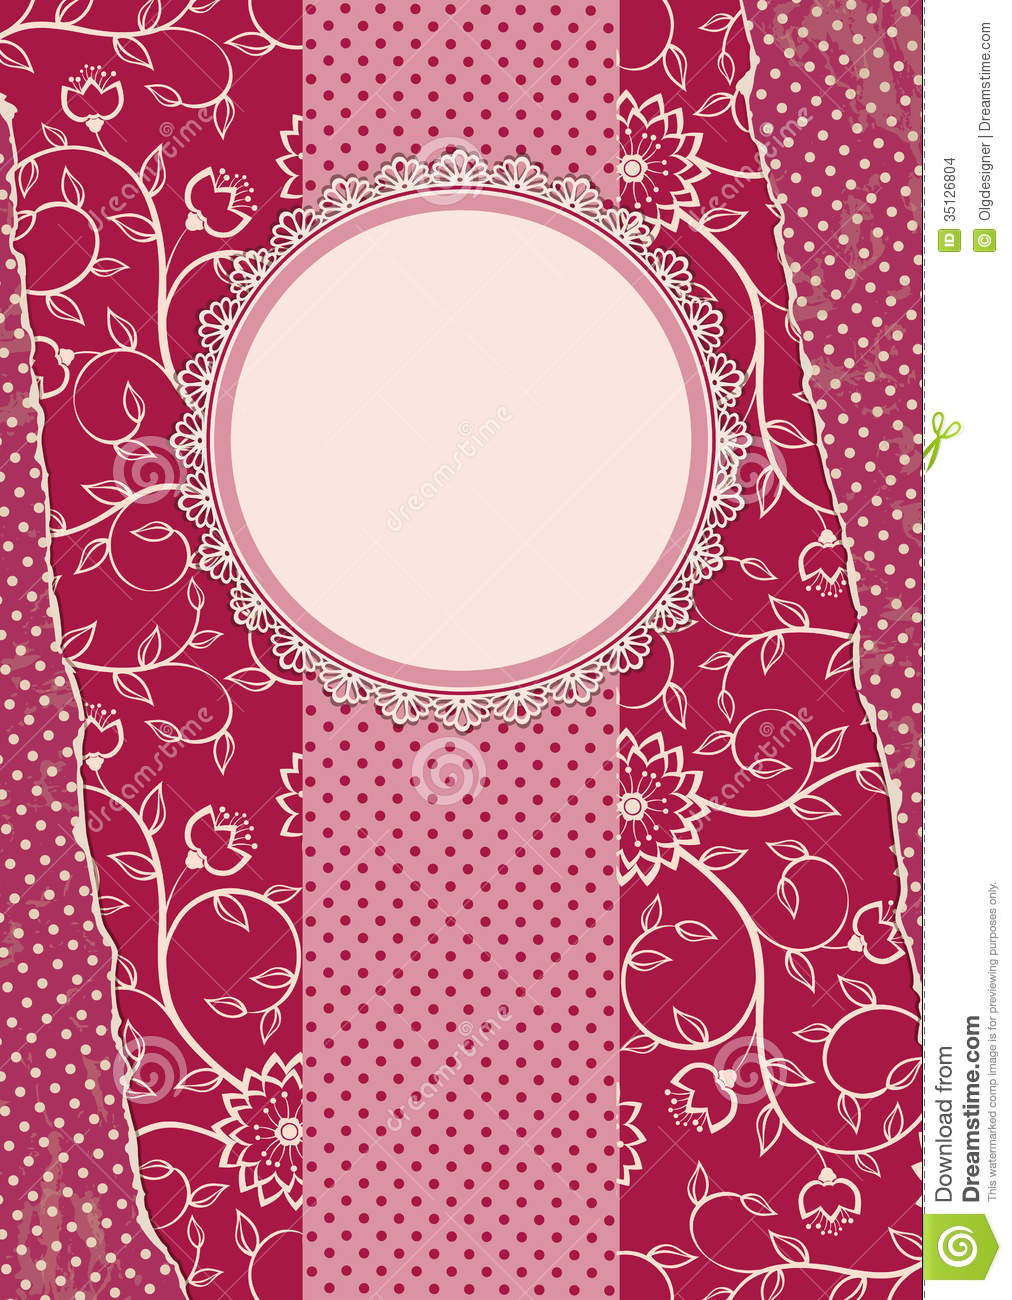 invitation vintage card with frame stock vector illustration of